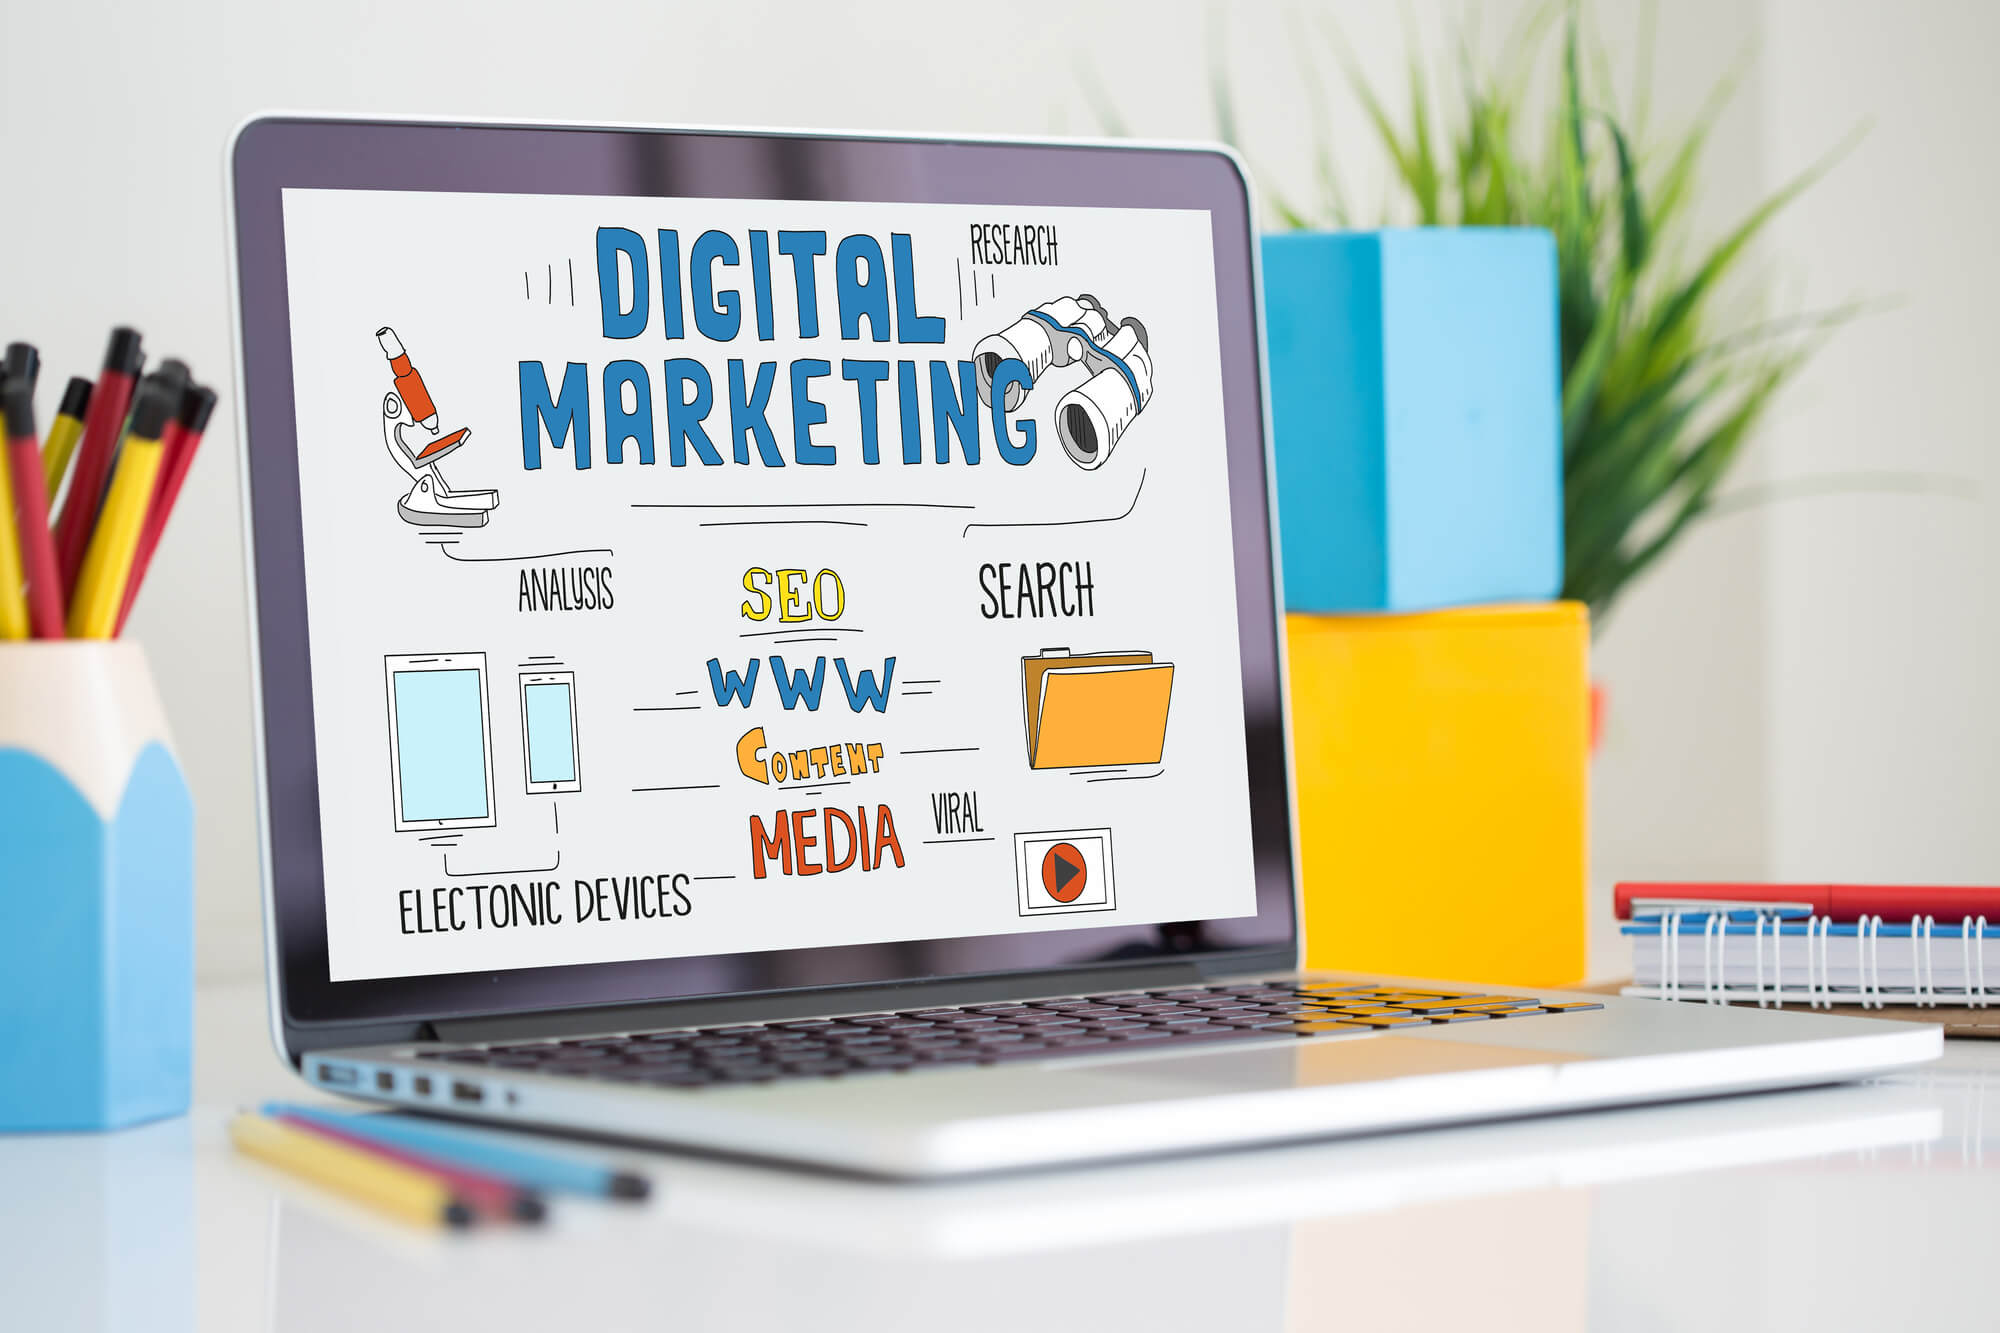 laptop with digital marketing concept